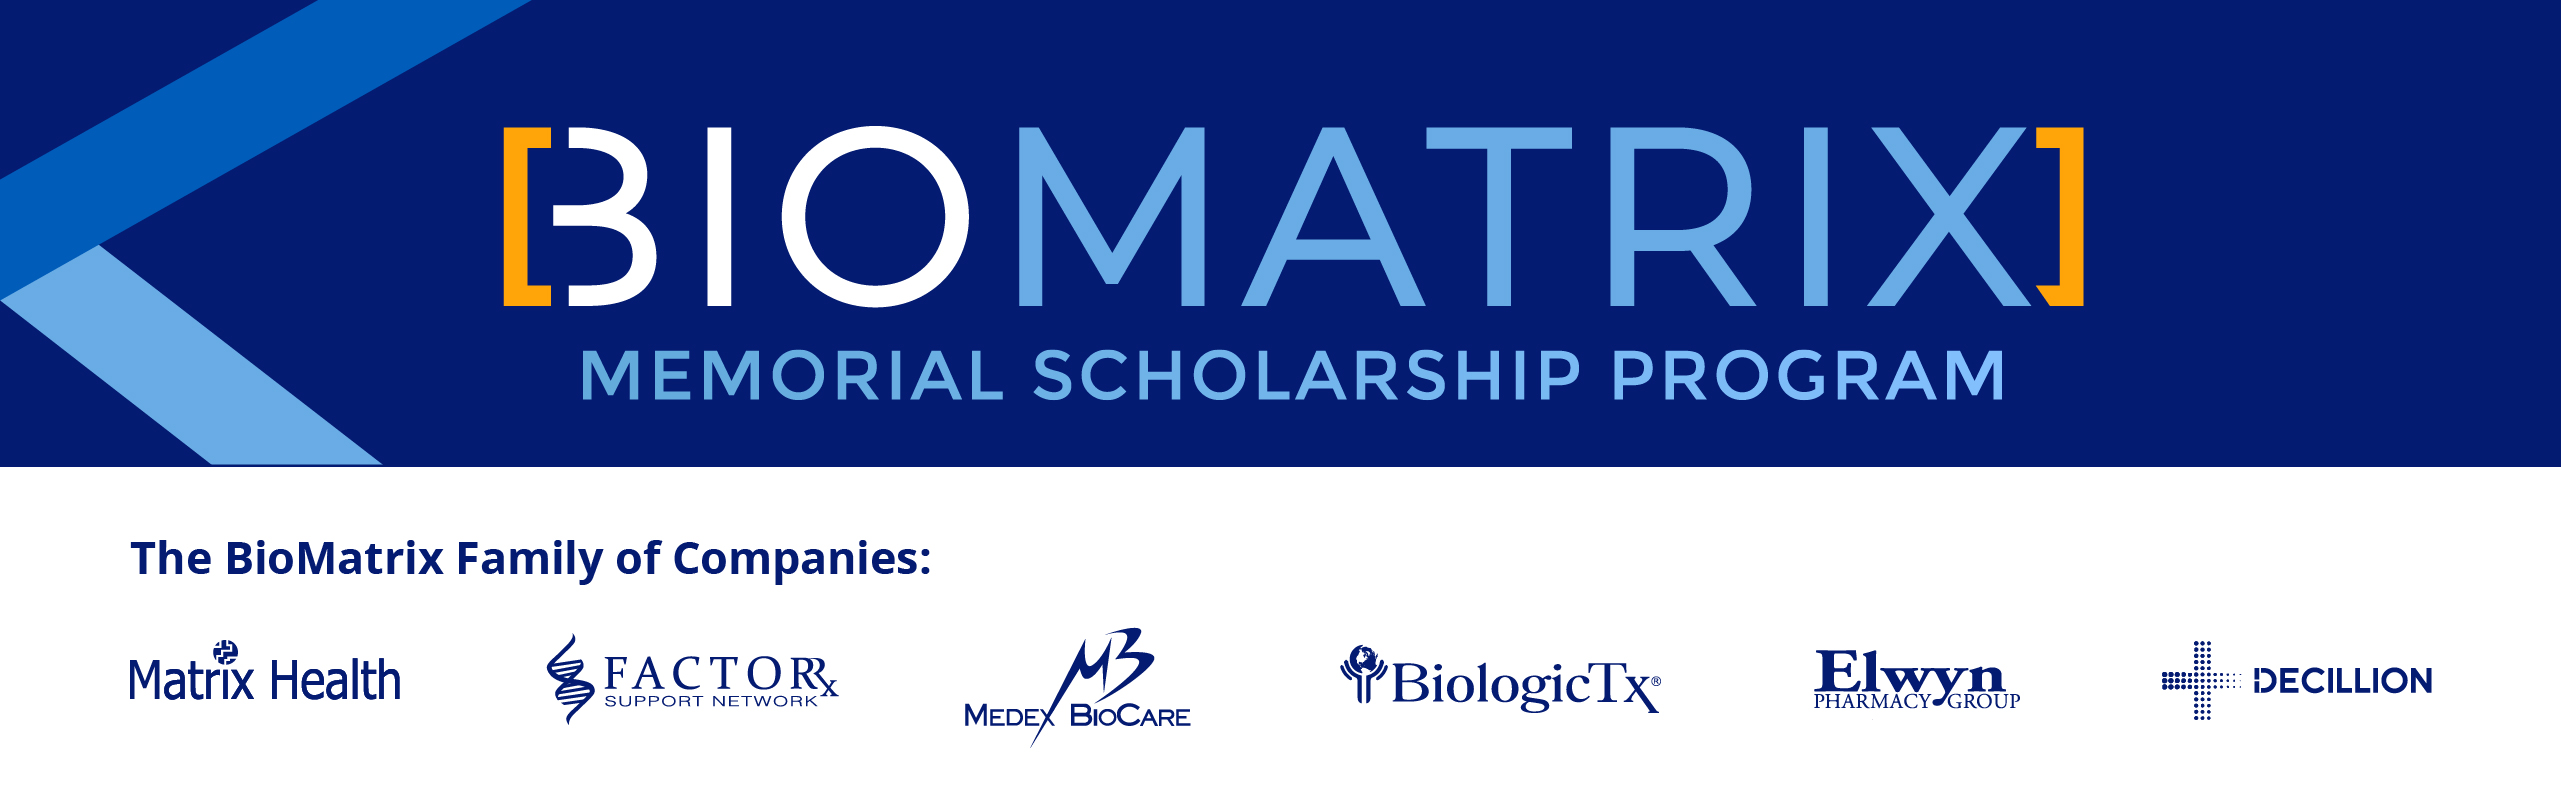 BioMatrix Memorial Scholarship Program